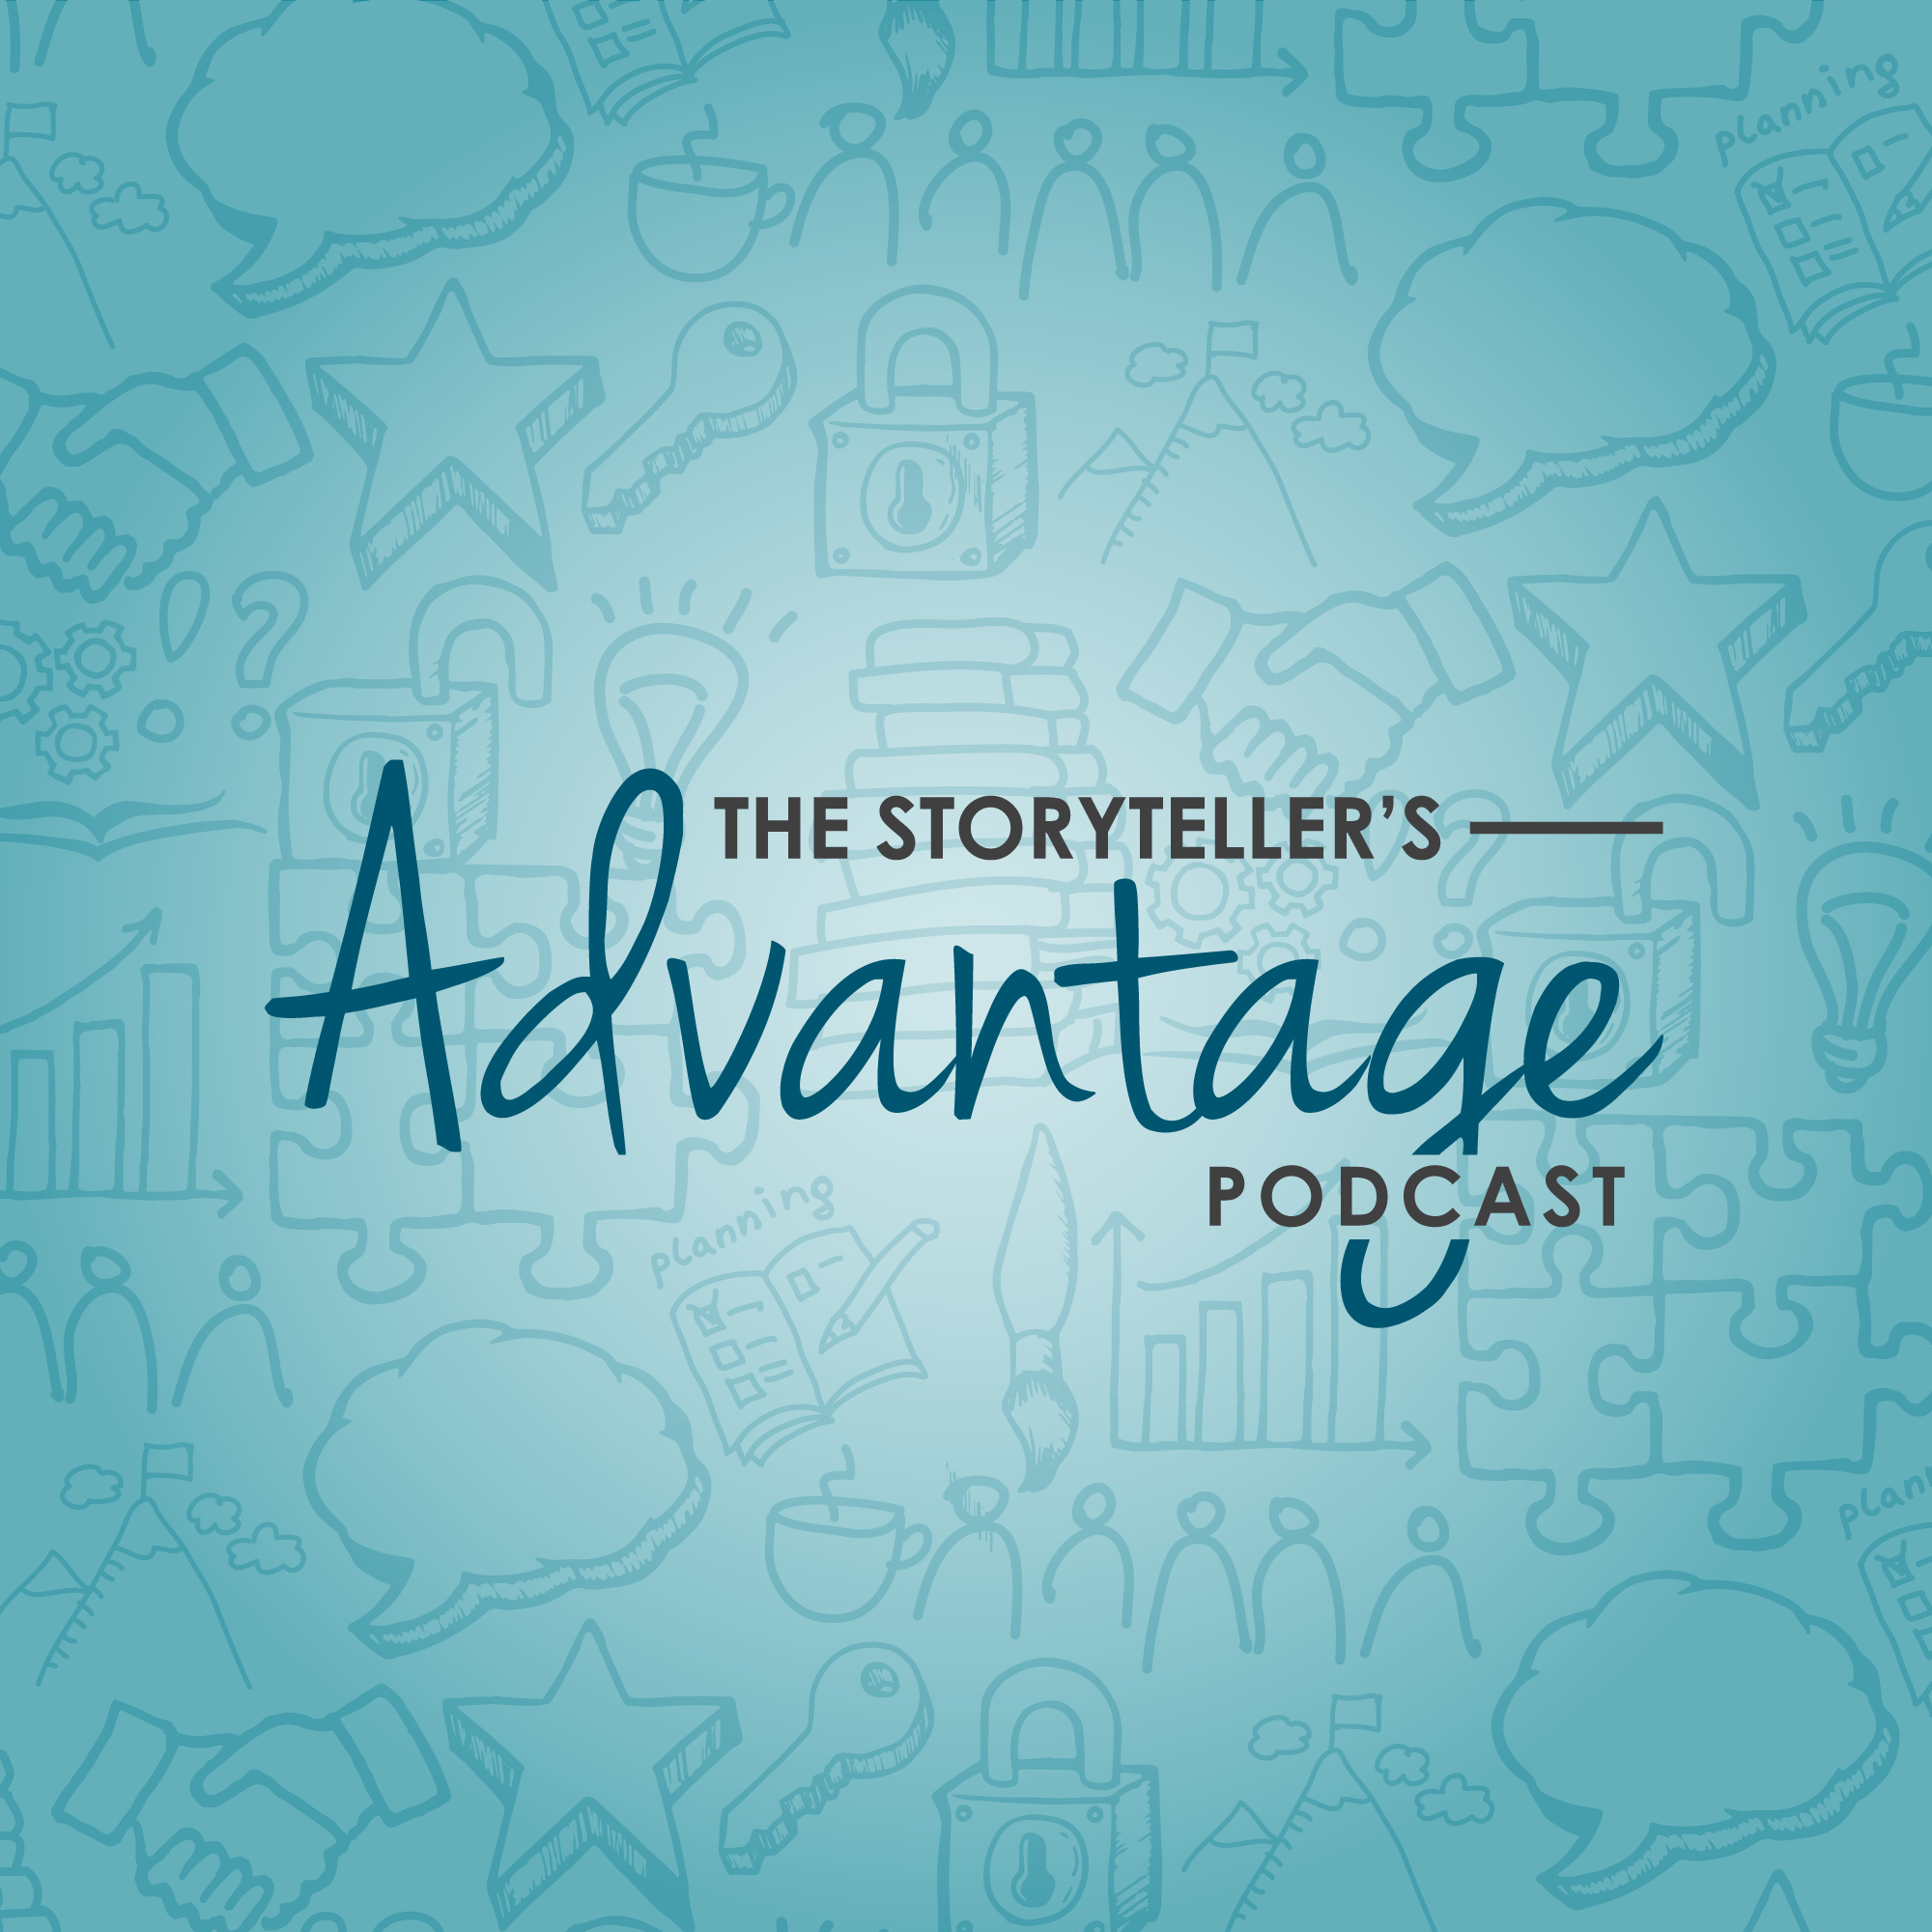 TheStorytellersAdvantage_podcastalbumart-option1.png